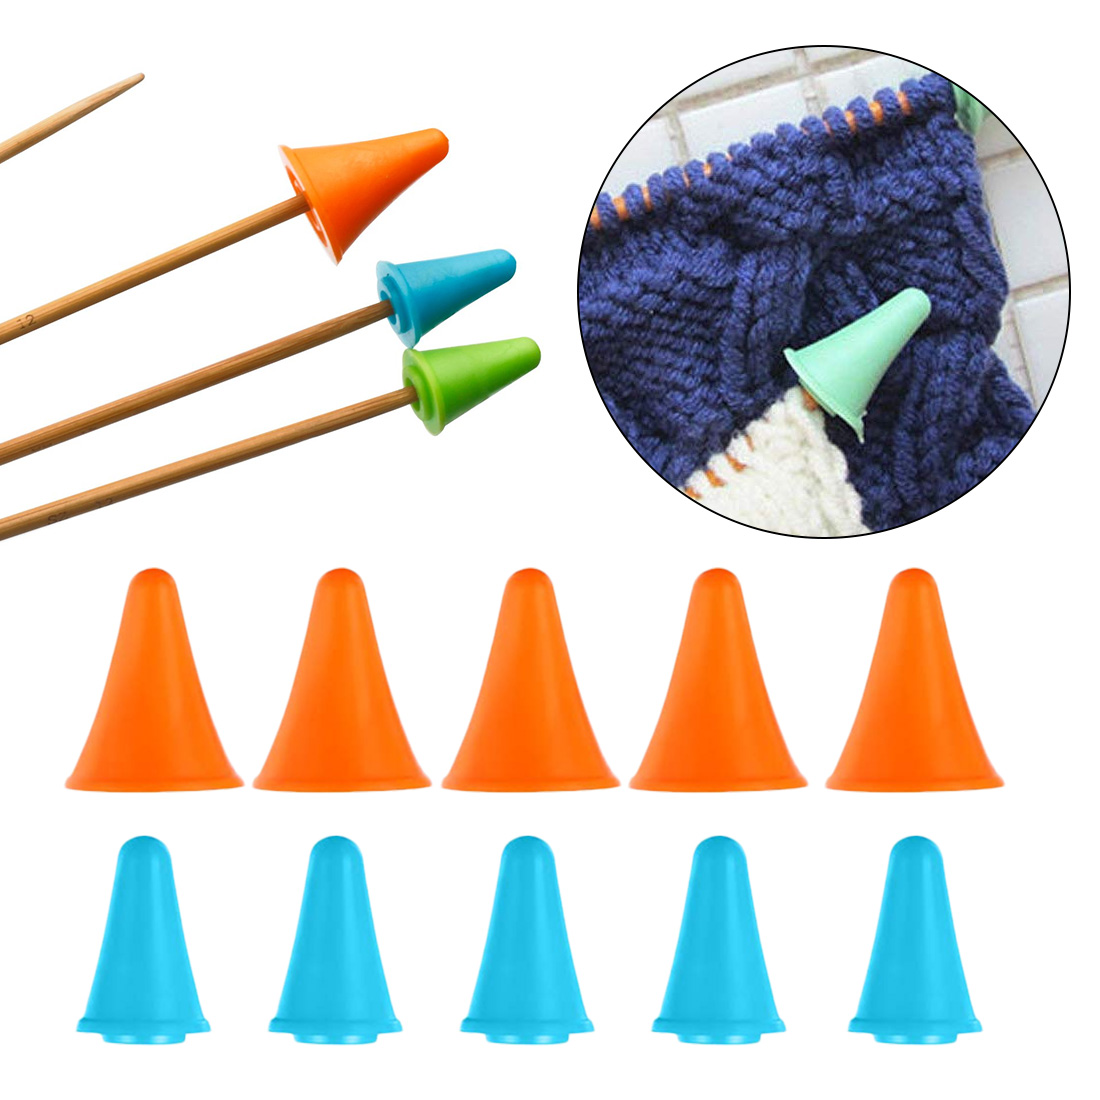 10pcs Rubber Cone Shape Knit Knitting Needles Cap Tips Point Protectors 2 Sizes For Knitting Craft Sewing Accessories